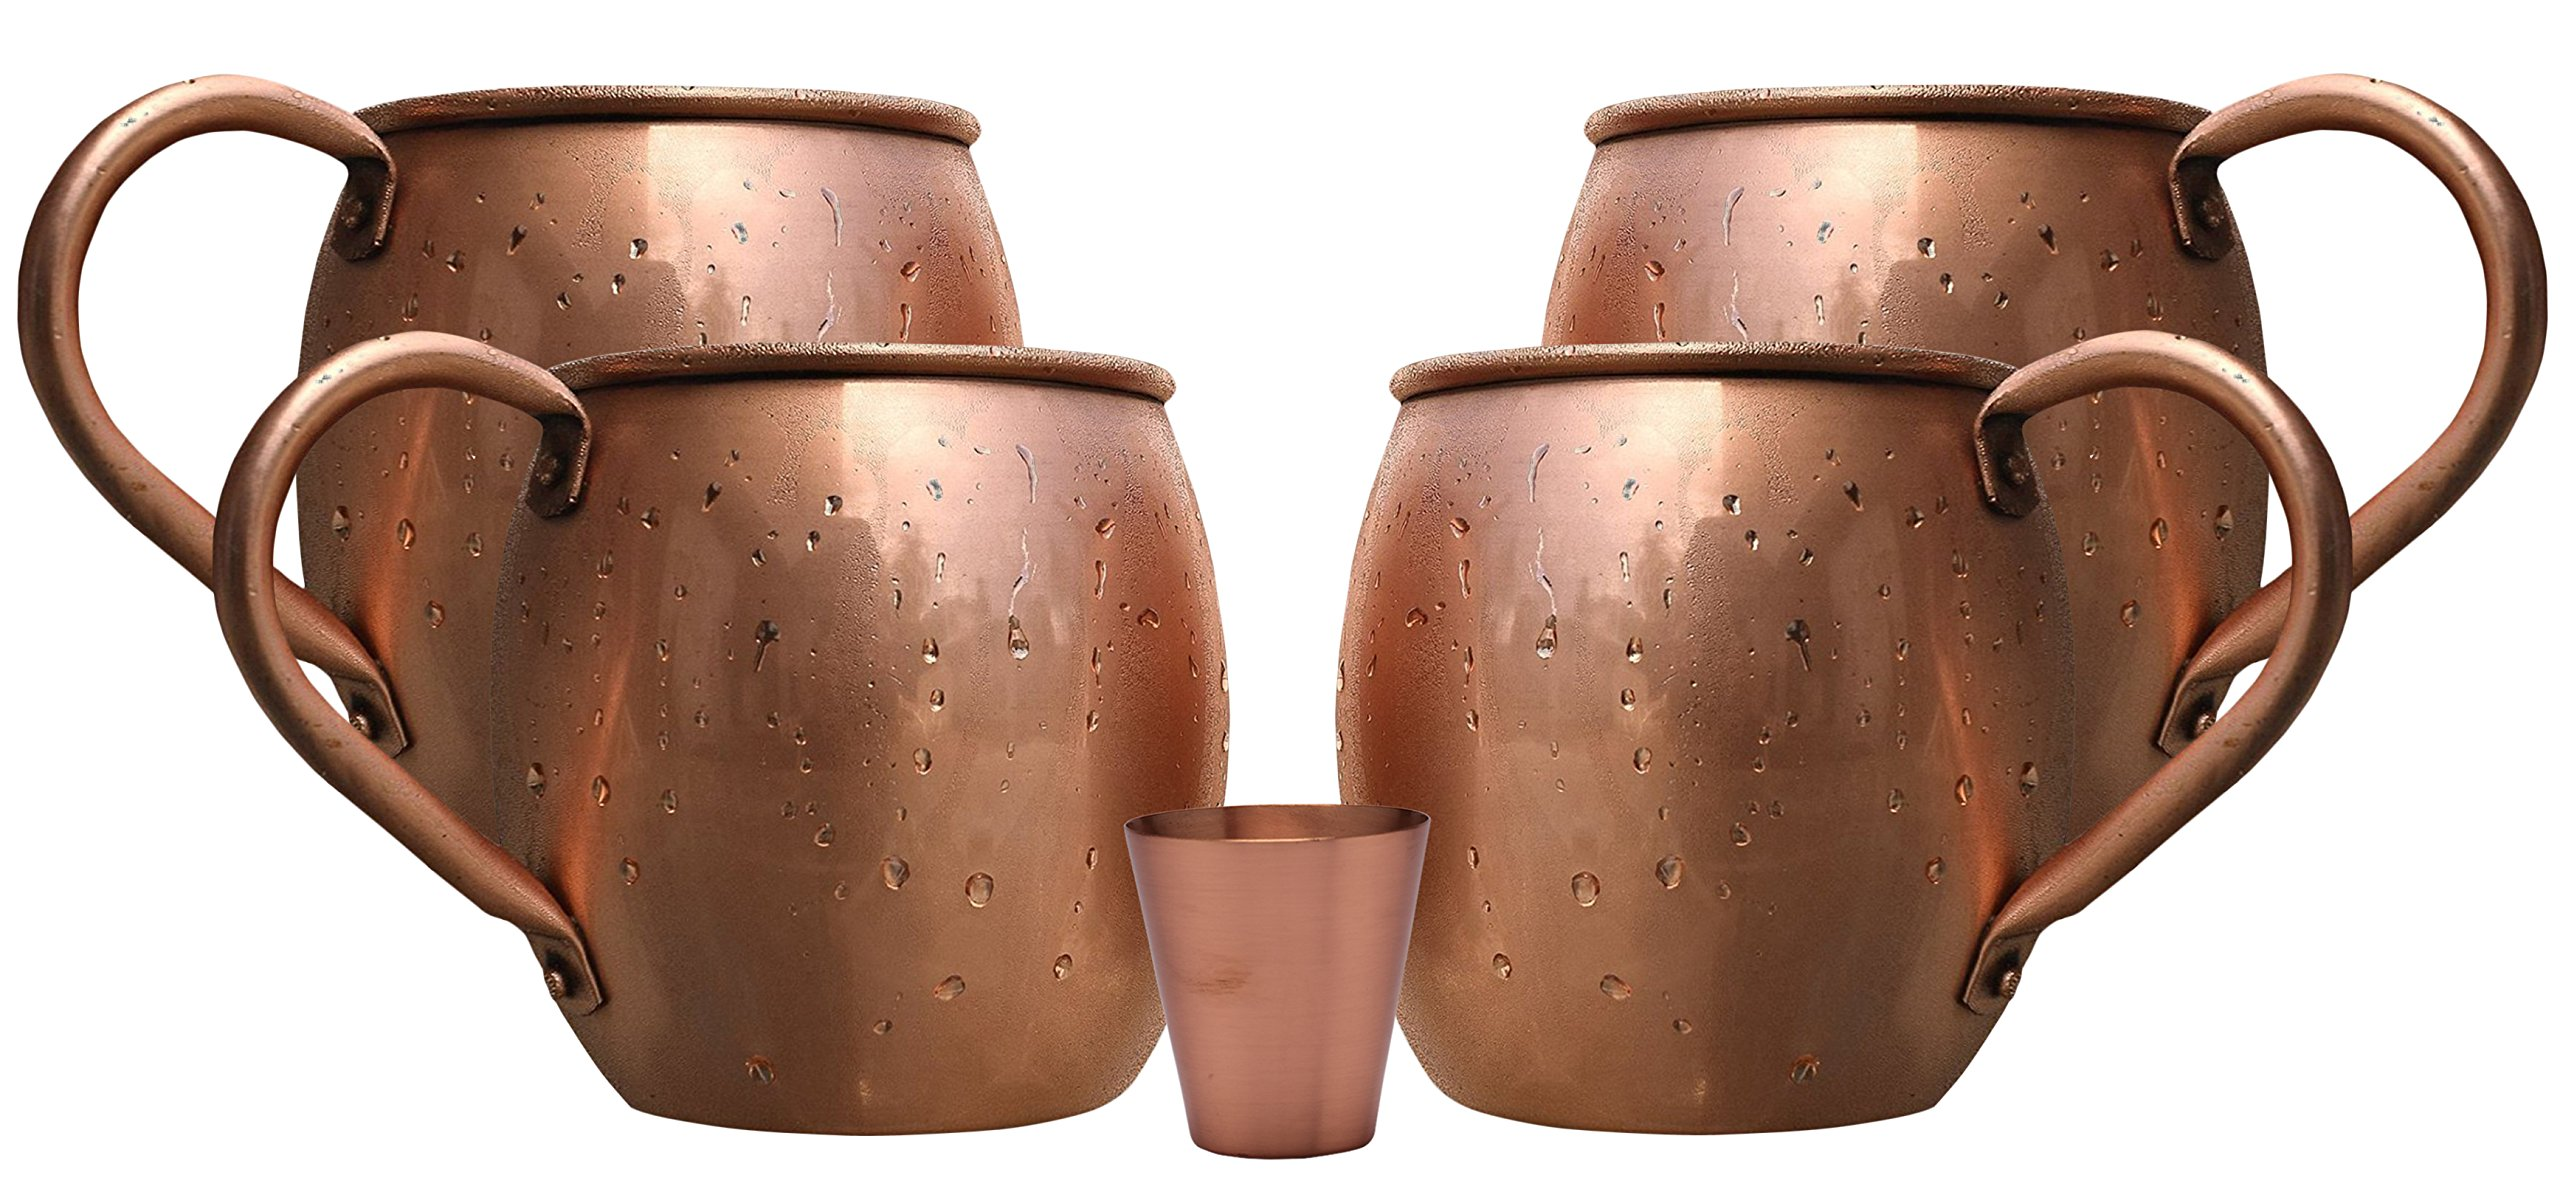 Melange 20 Oz Copper Barrel Mug for Moscow Mules, Set of 4 with One Shot Glass - Heavy Gauge - No Lining - Includes Free Recipe Card